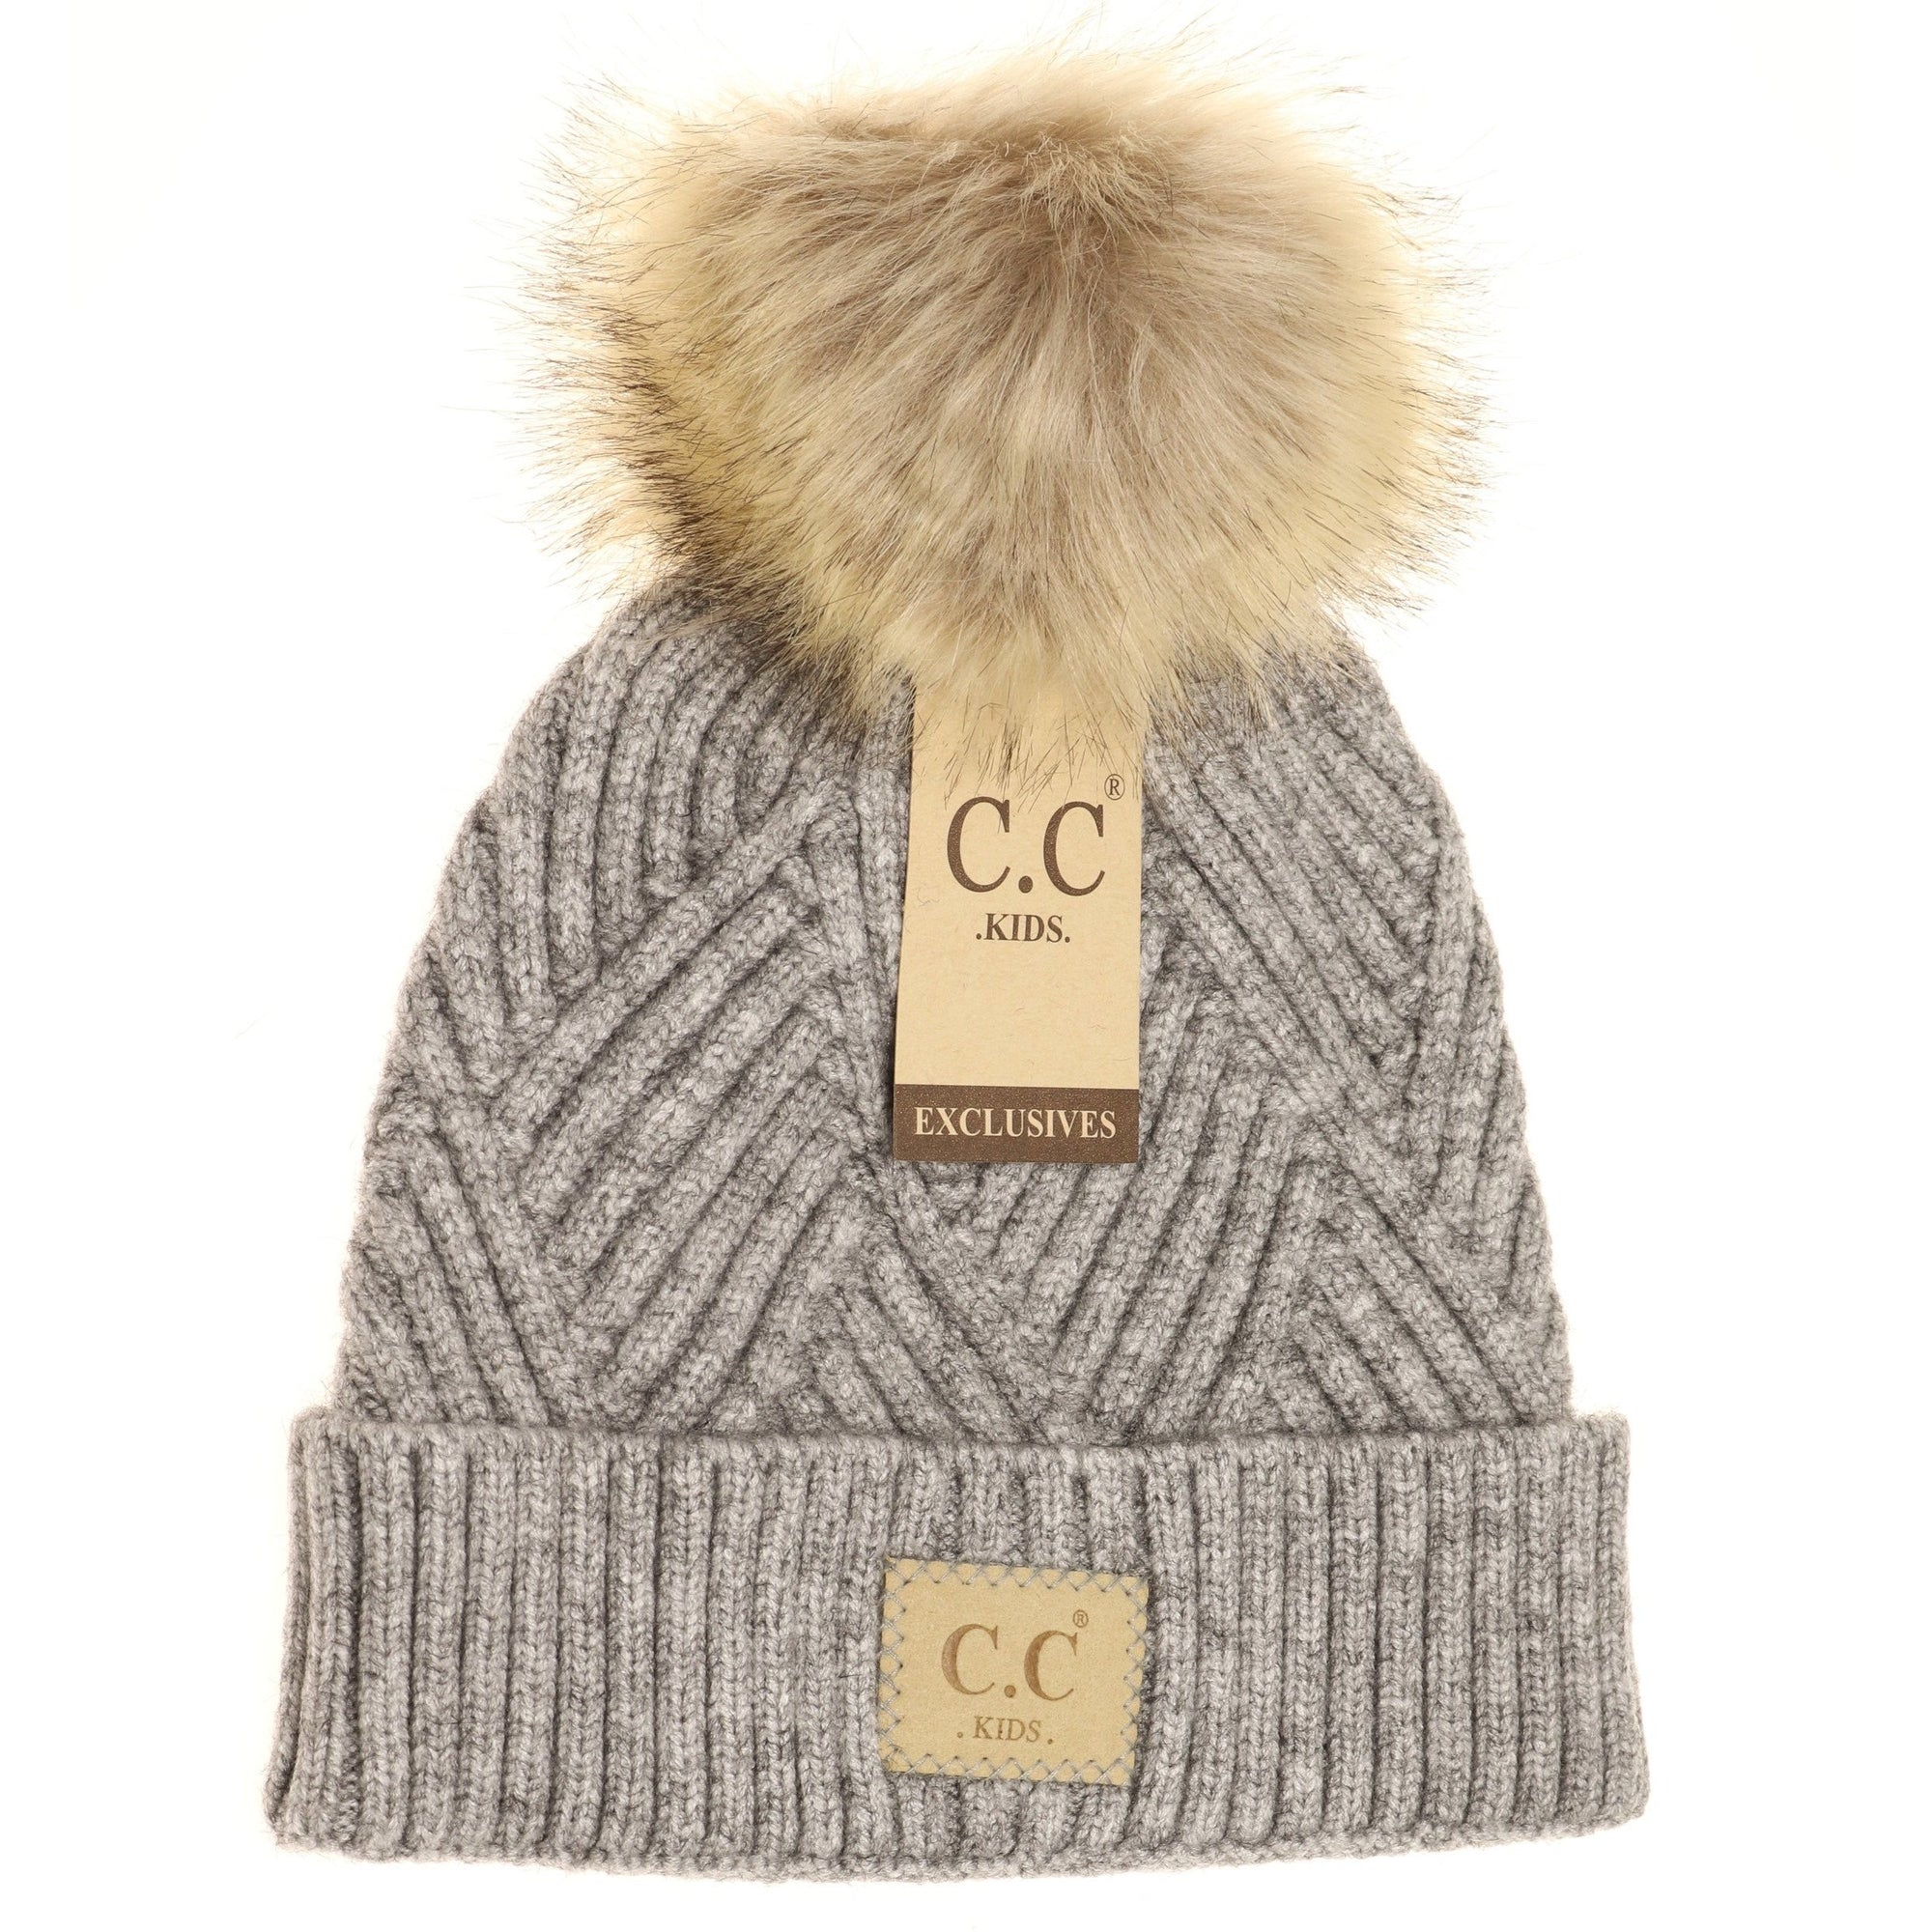 CC KIDS Heathered Beanie-Lt. Grey Mix